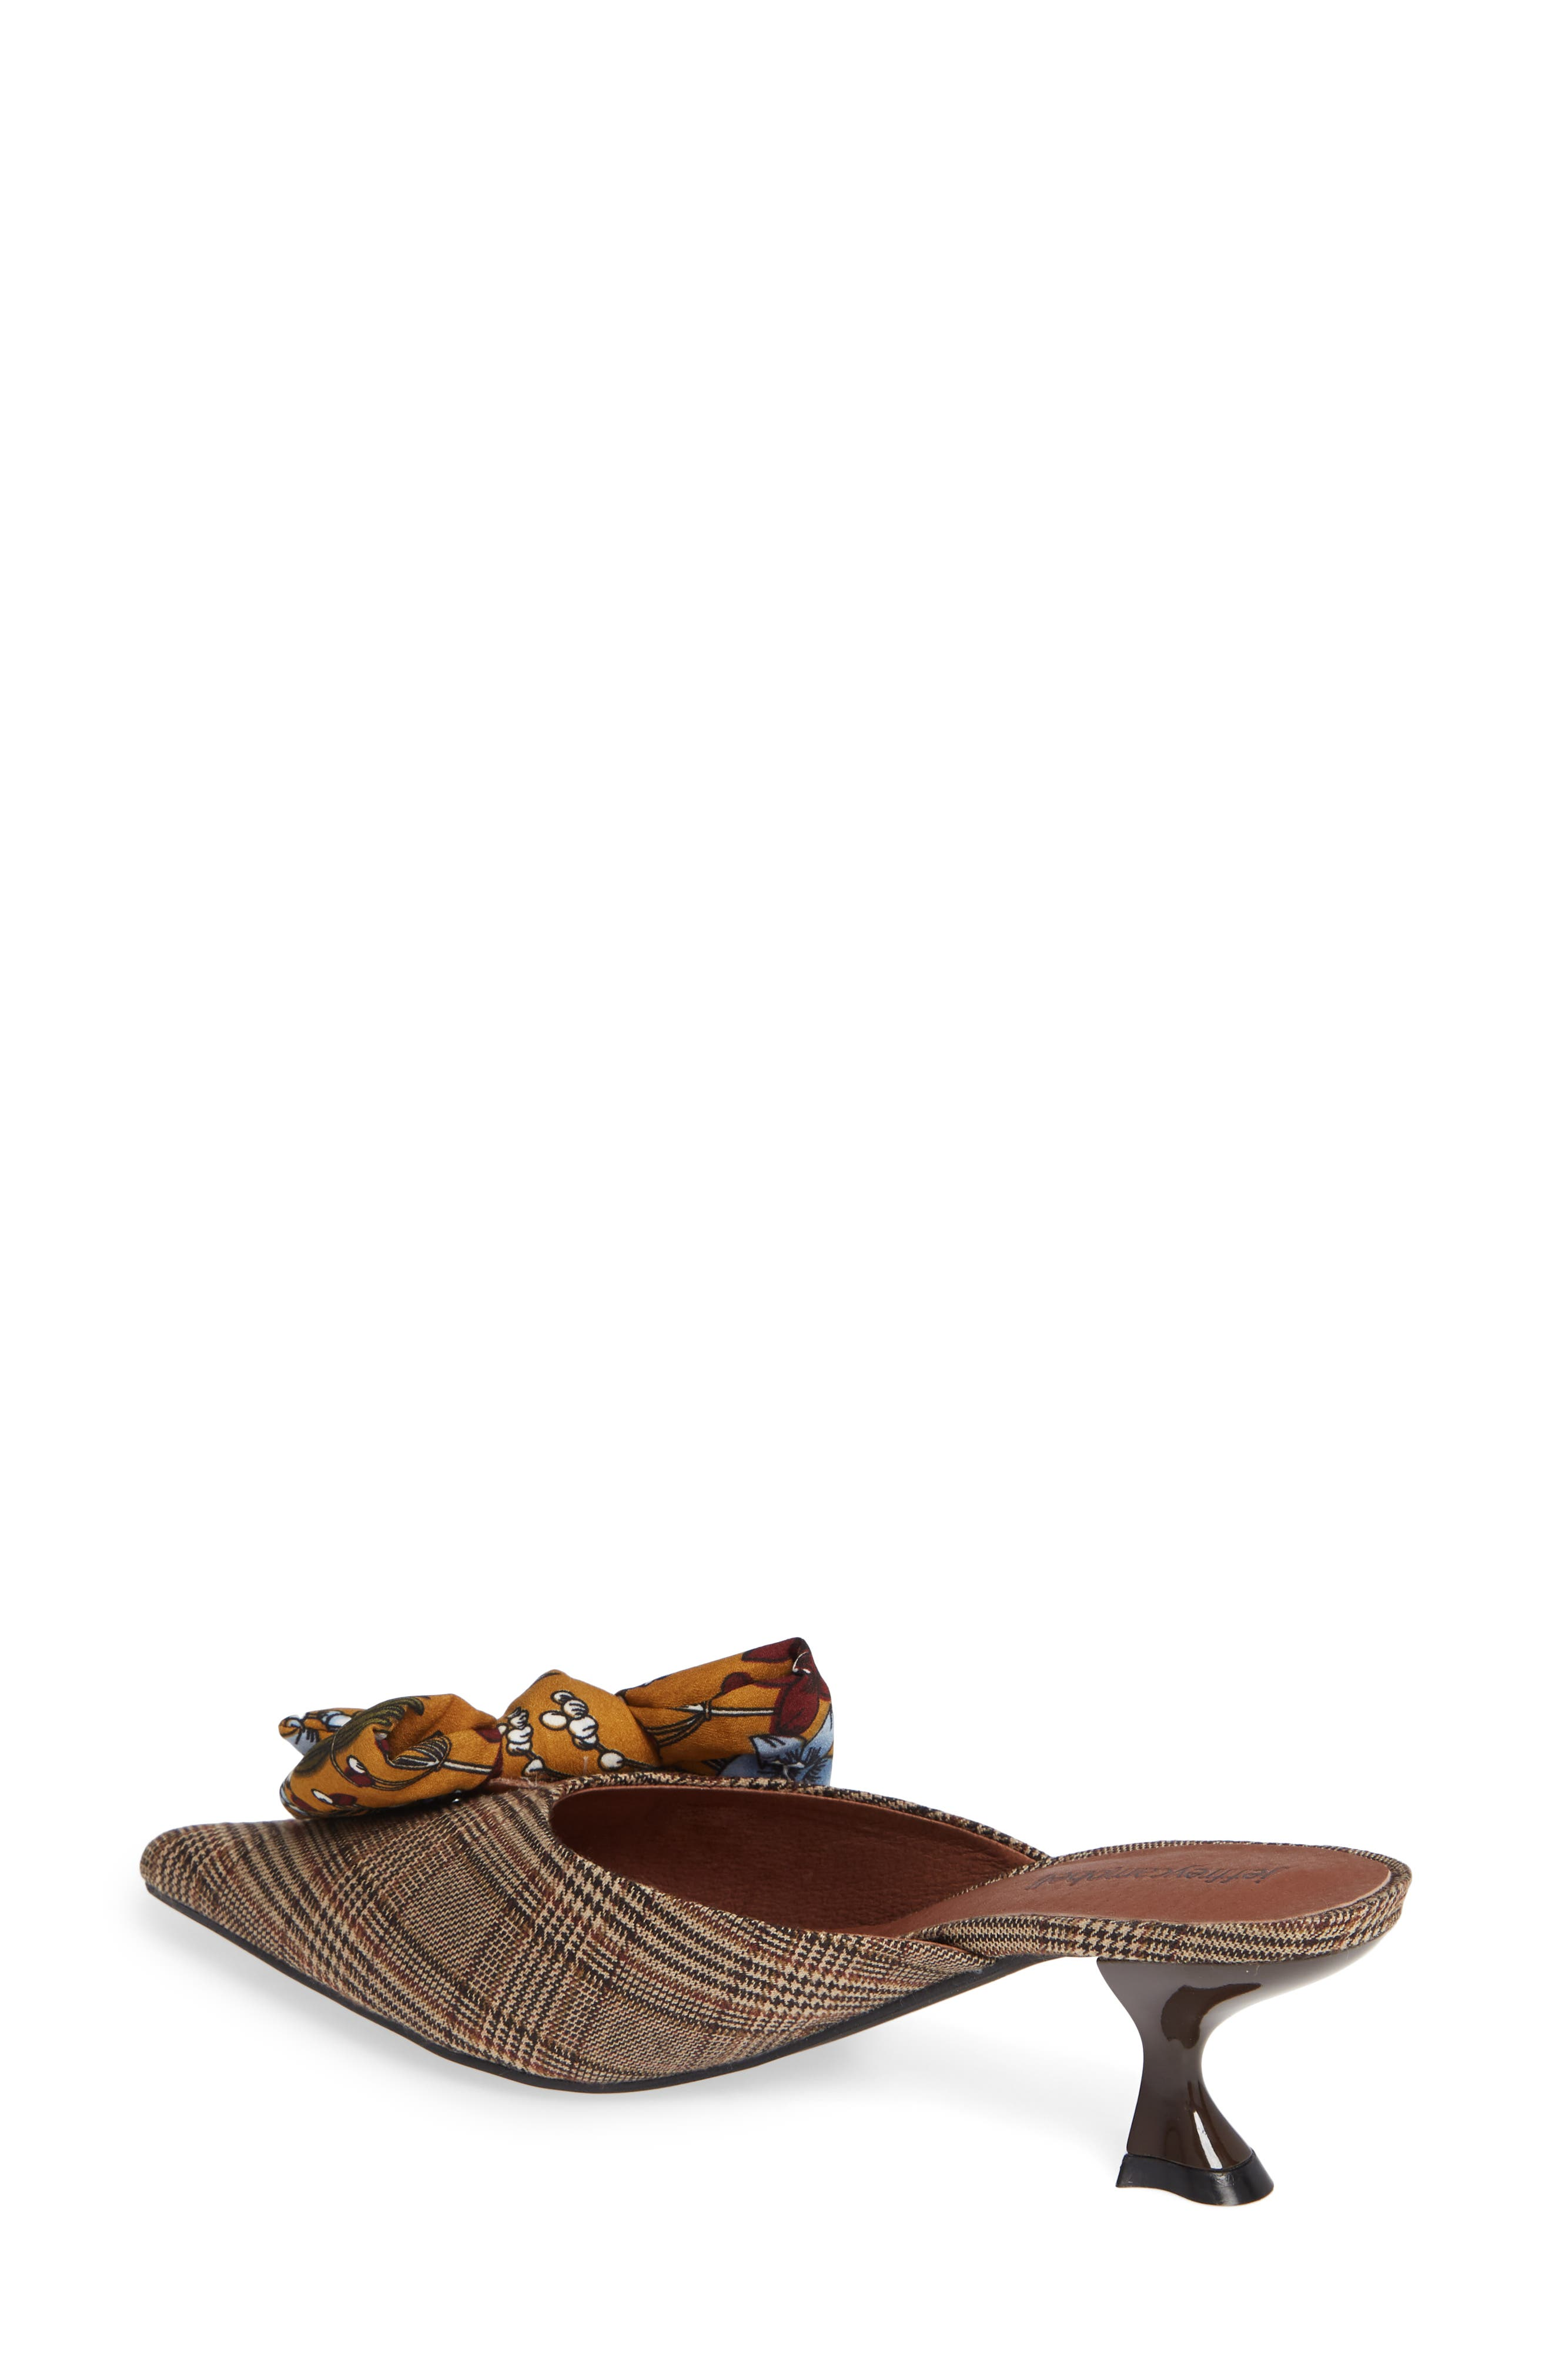 Adorn Pointy Toe Mule,                             Alternate thumbnail 2, color,                             MUSTARD/ NAVY FLORAL MULTI